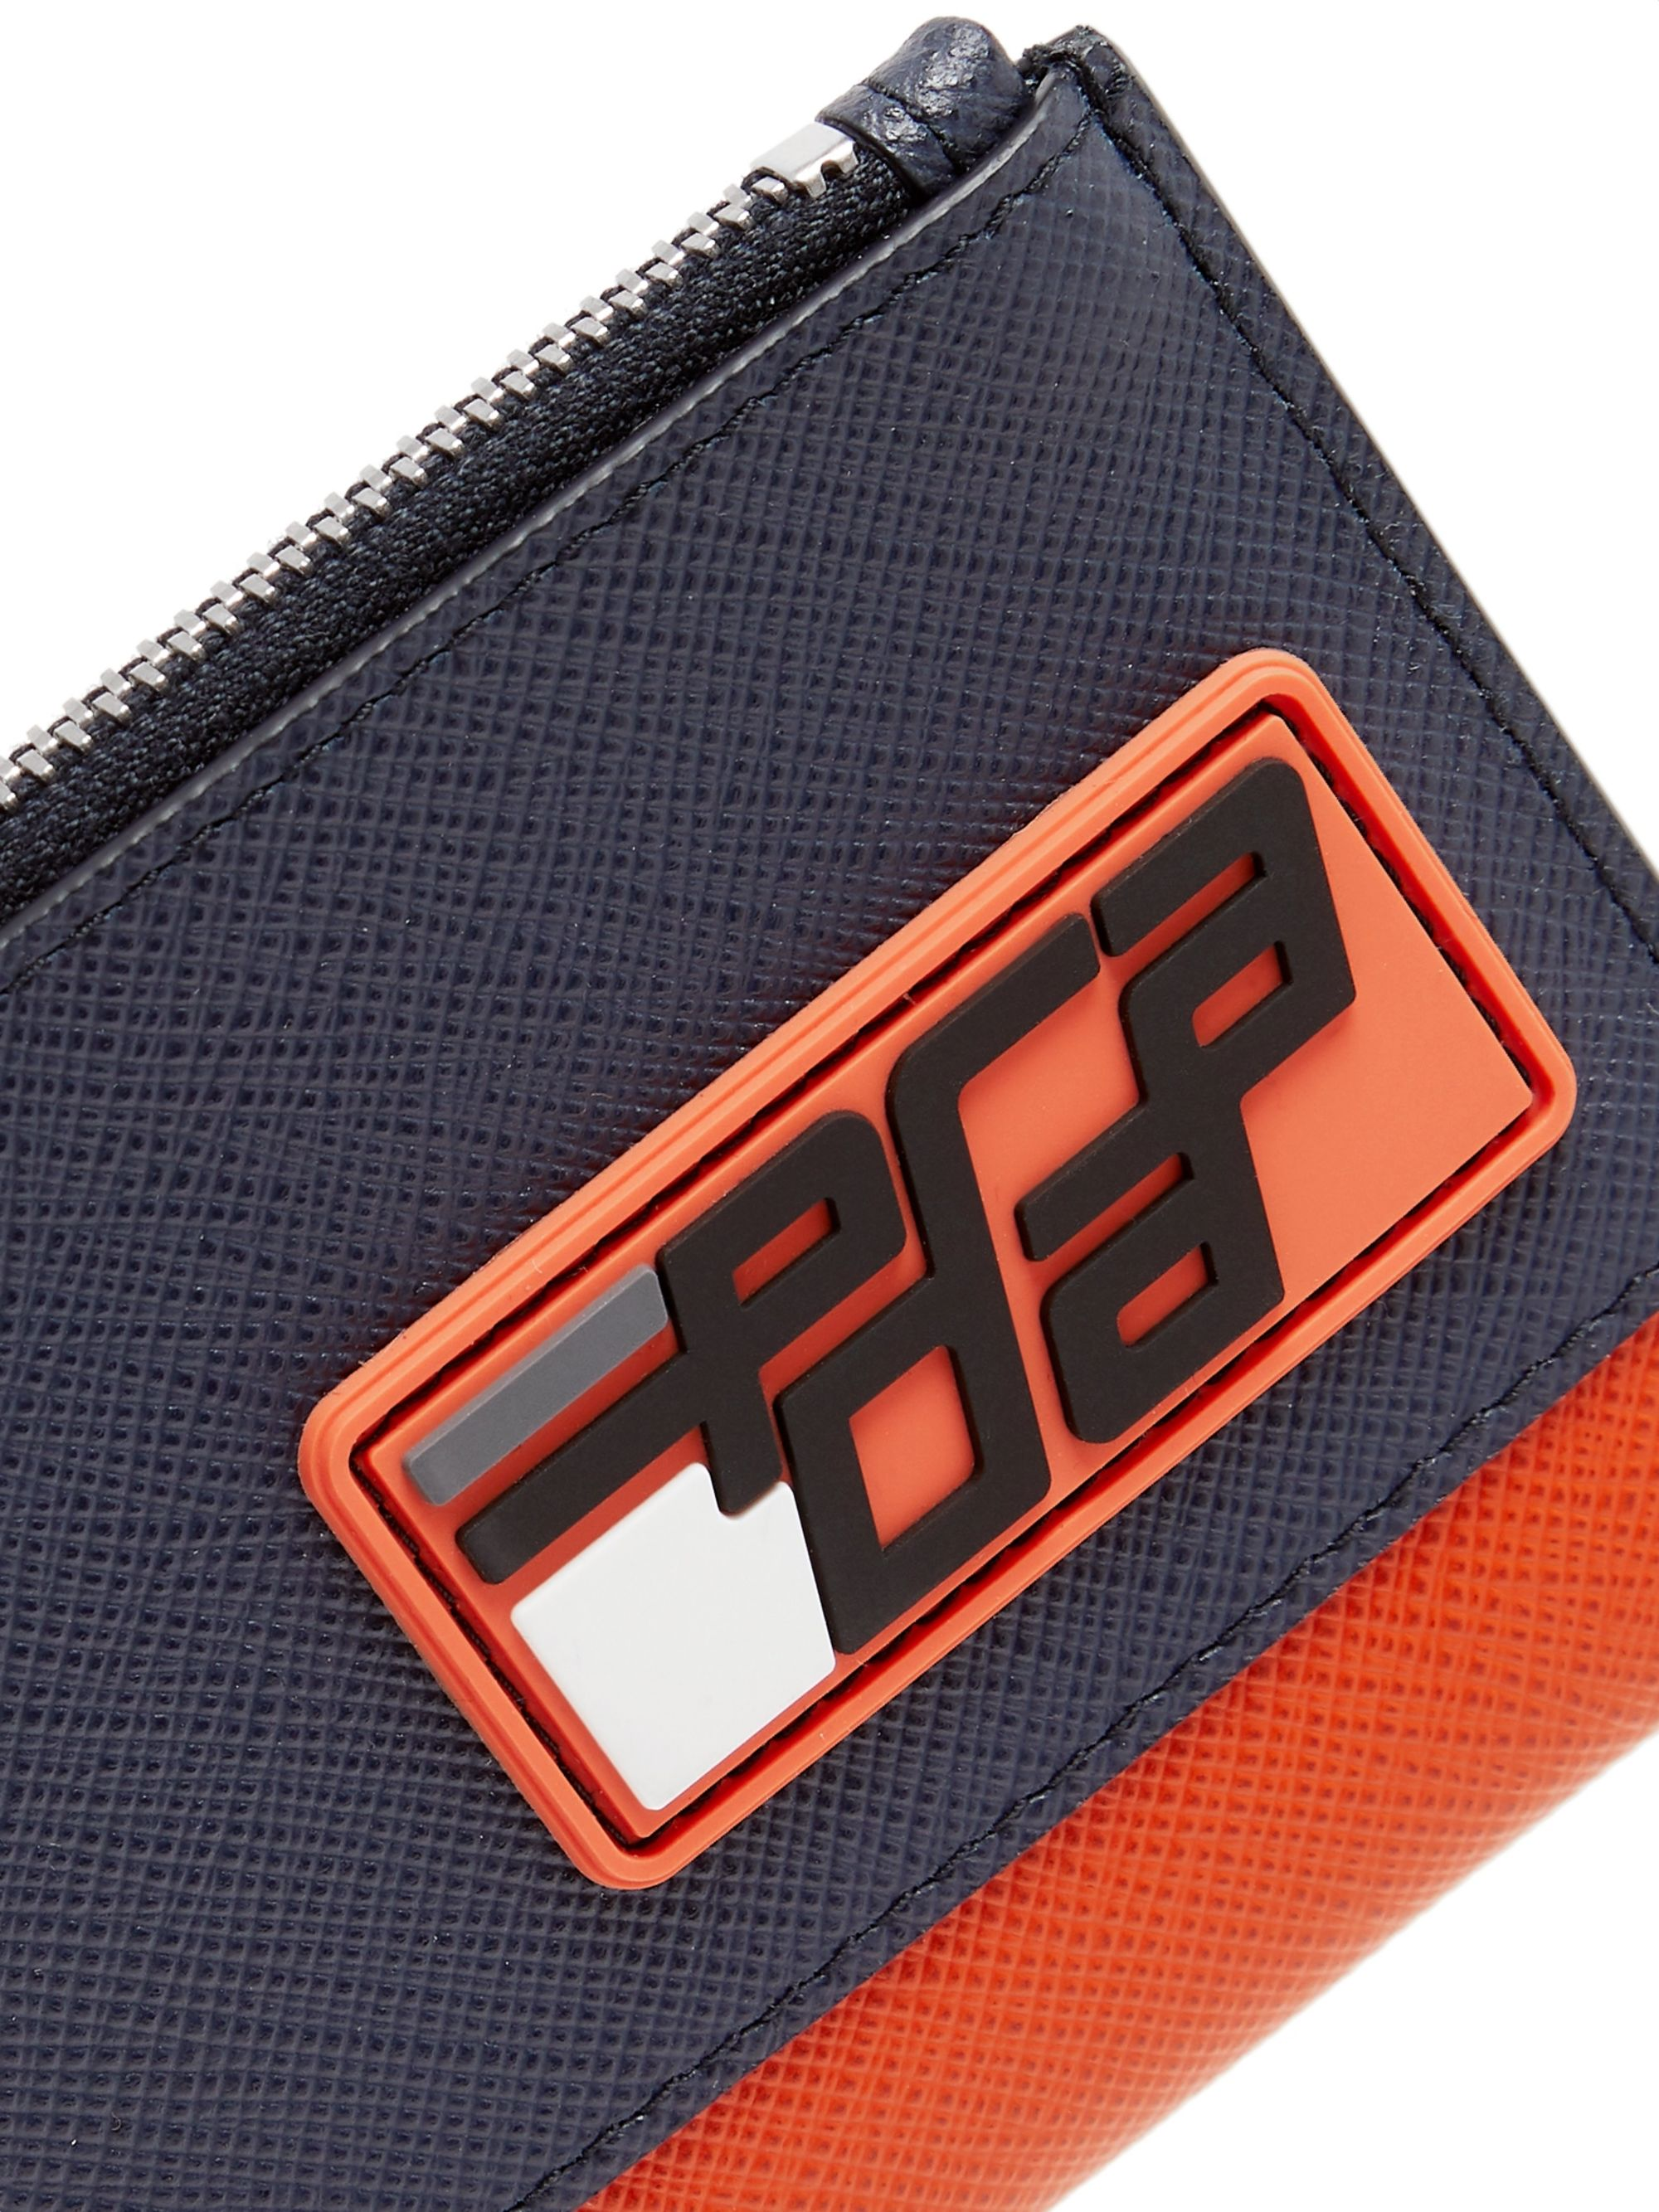 Prada Logo-Appliquéd Two-Tone Saffiano Leather Pouch